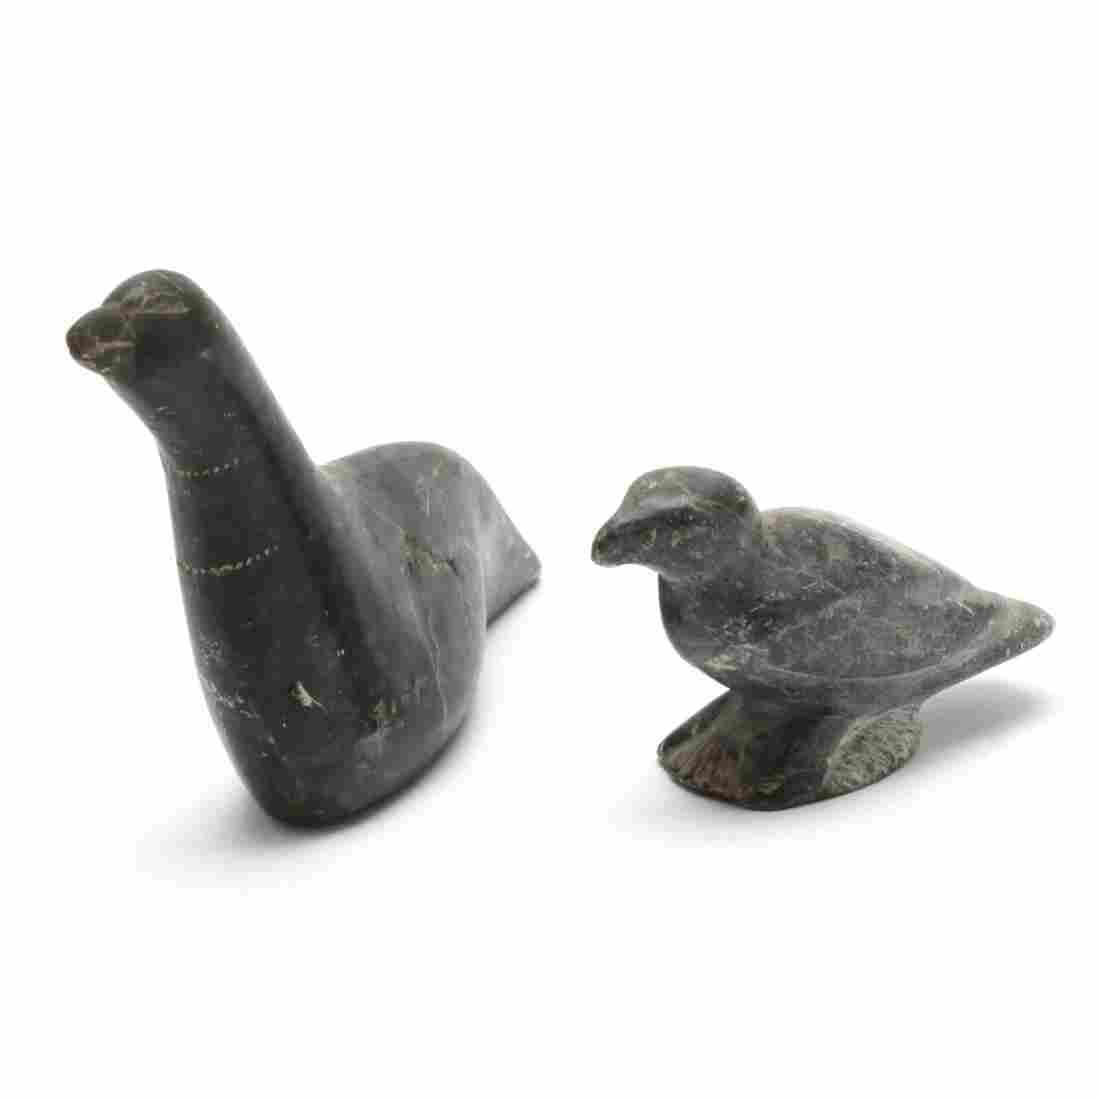 Two Inuit Carved Stone Sculptures